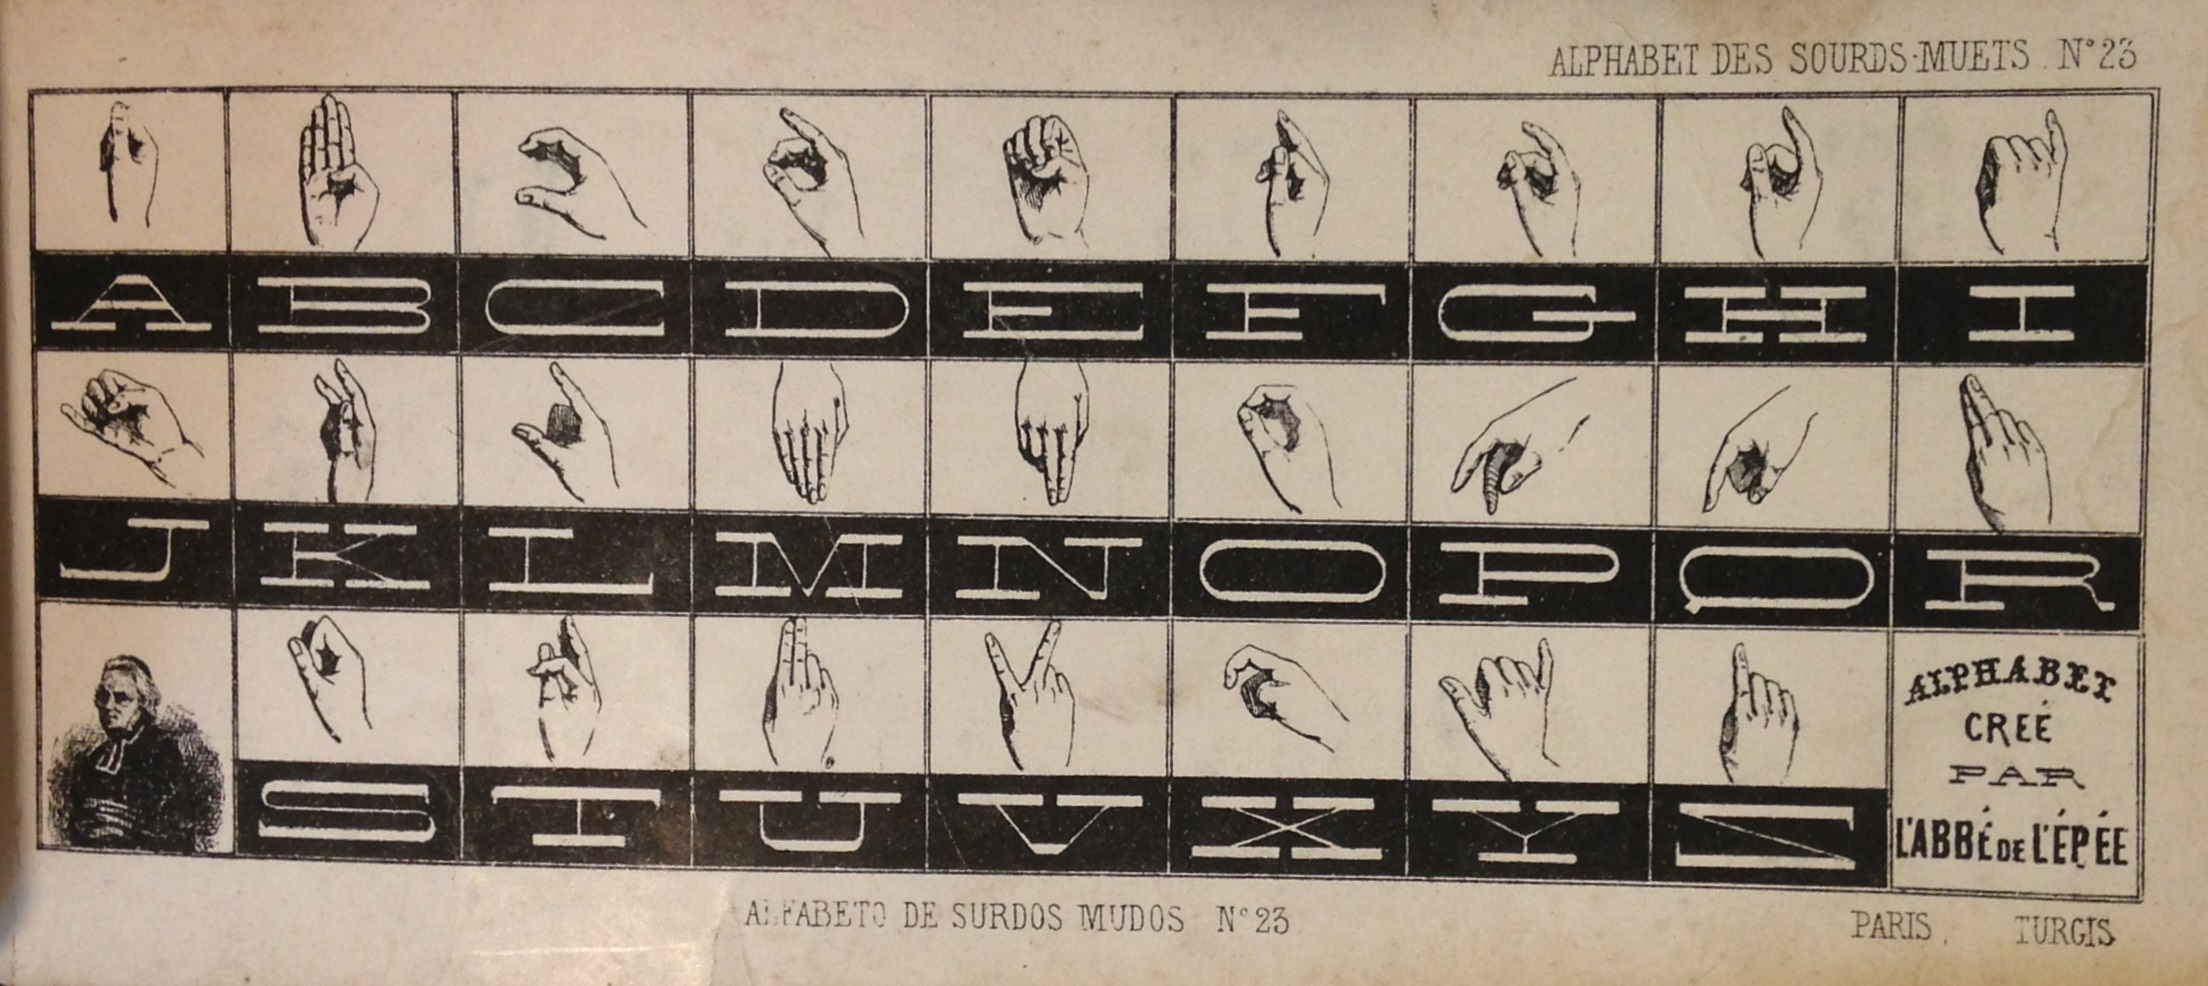 A manual alphabet from a collection of ornamental alphabets, Recueil d'alphabets, dedié aux artistes (Paris & New York: L. Turgis jeune, [ca. 1845?].  (NK3600 .B65 1845)